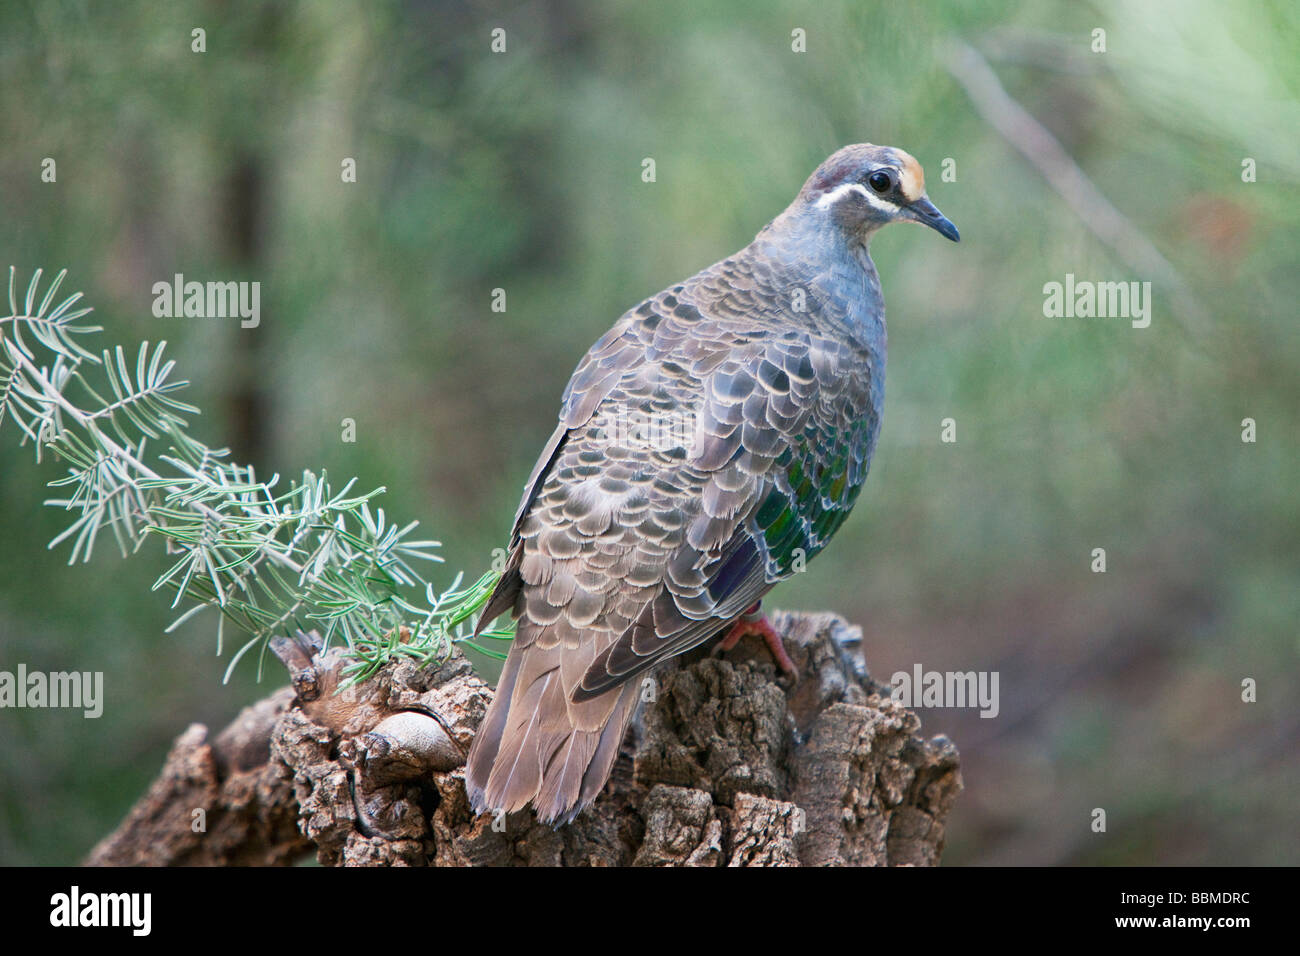 Australia, Northern Territory. A Common Bronzewing Pigeon at Alice Springs Desert Park. - Stock Image